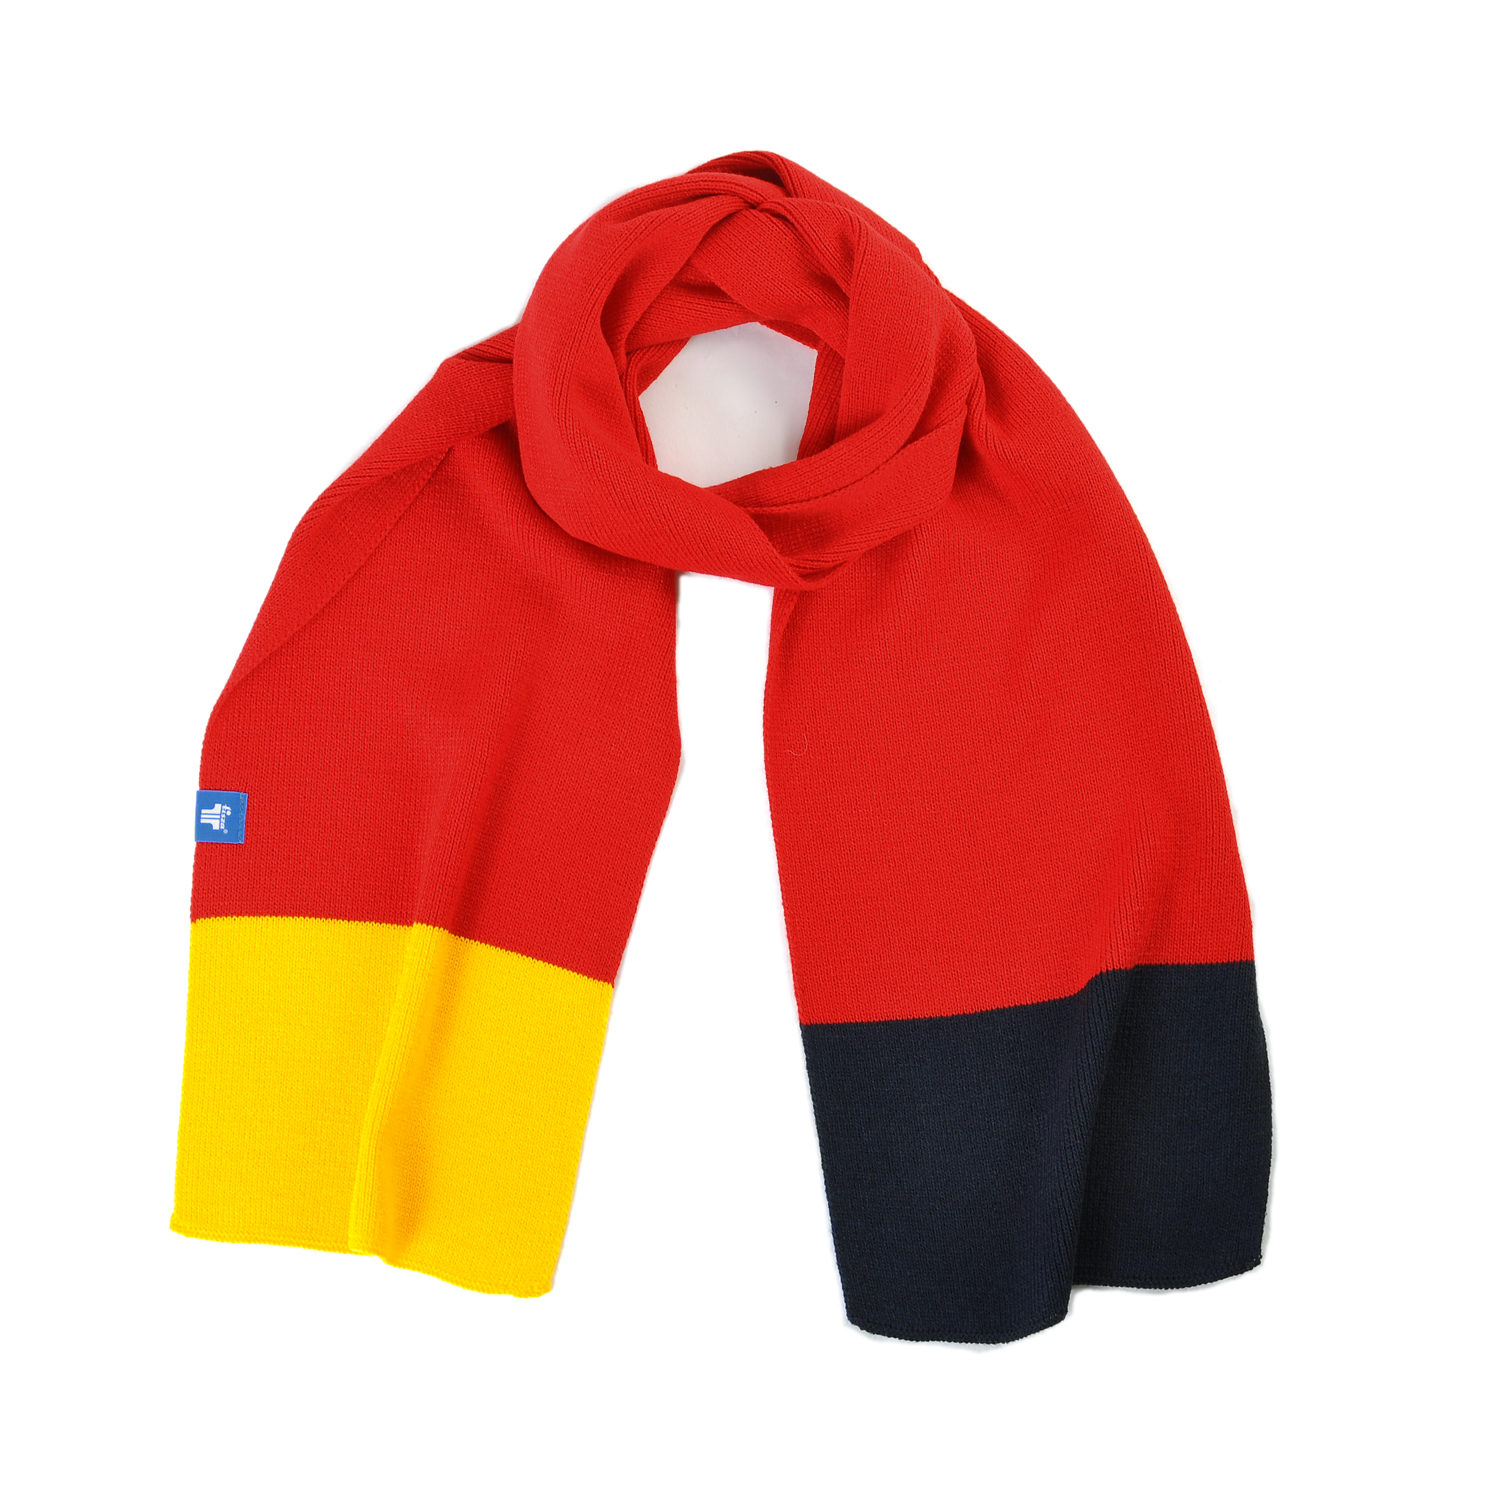 Tisza shoes - Scarf - Red-yellow